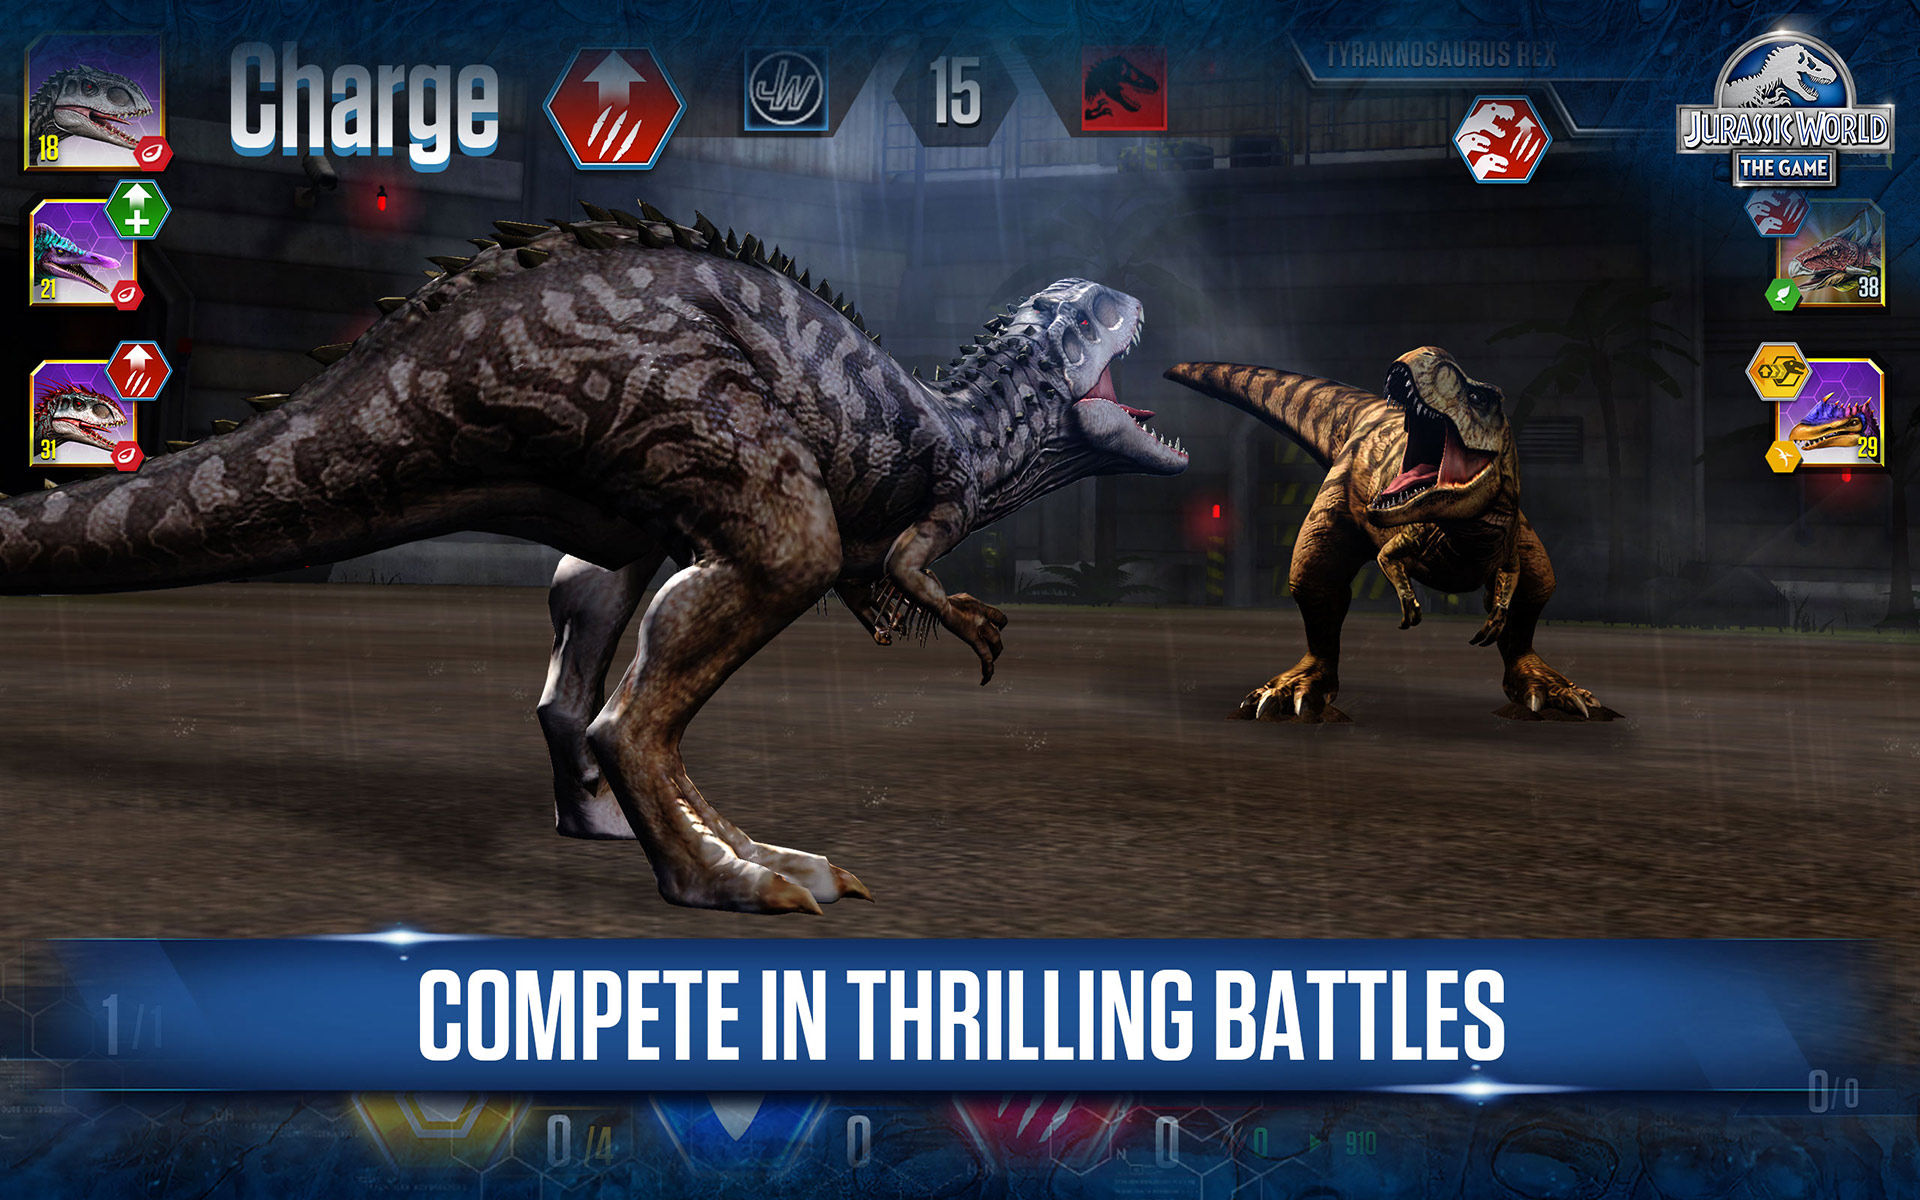 ab4543344 Amazon.com: Jurassic World™: The Game: Appstore for Android